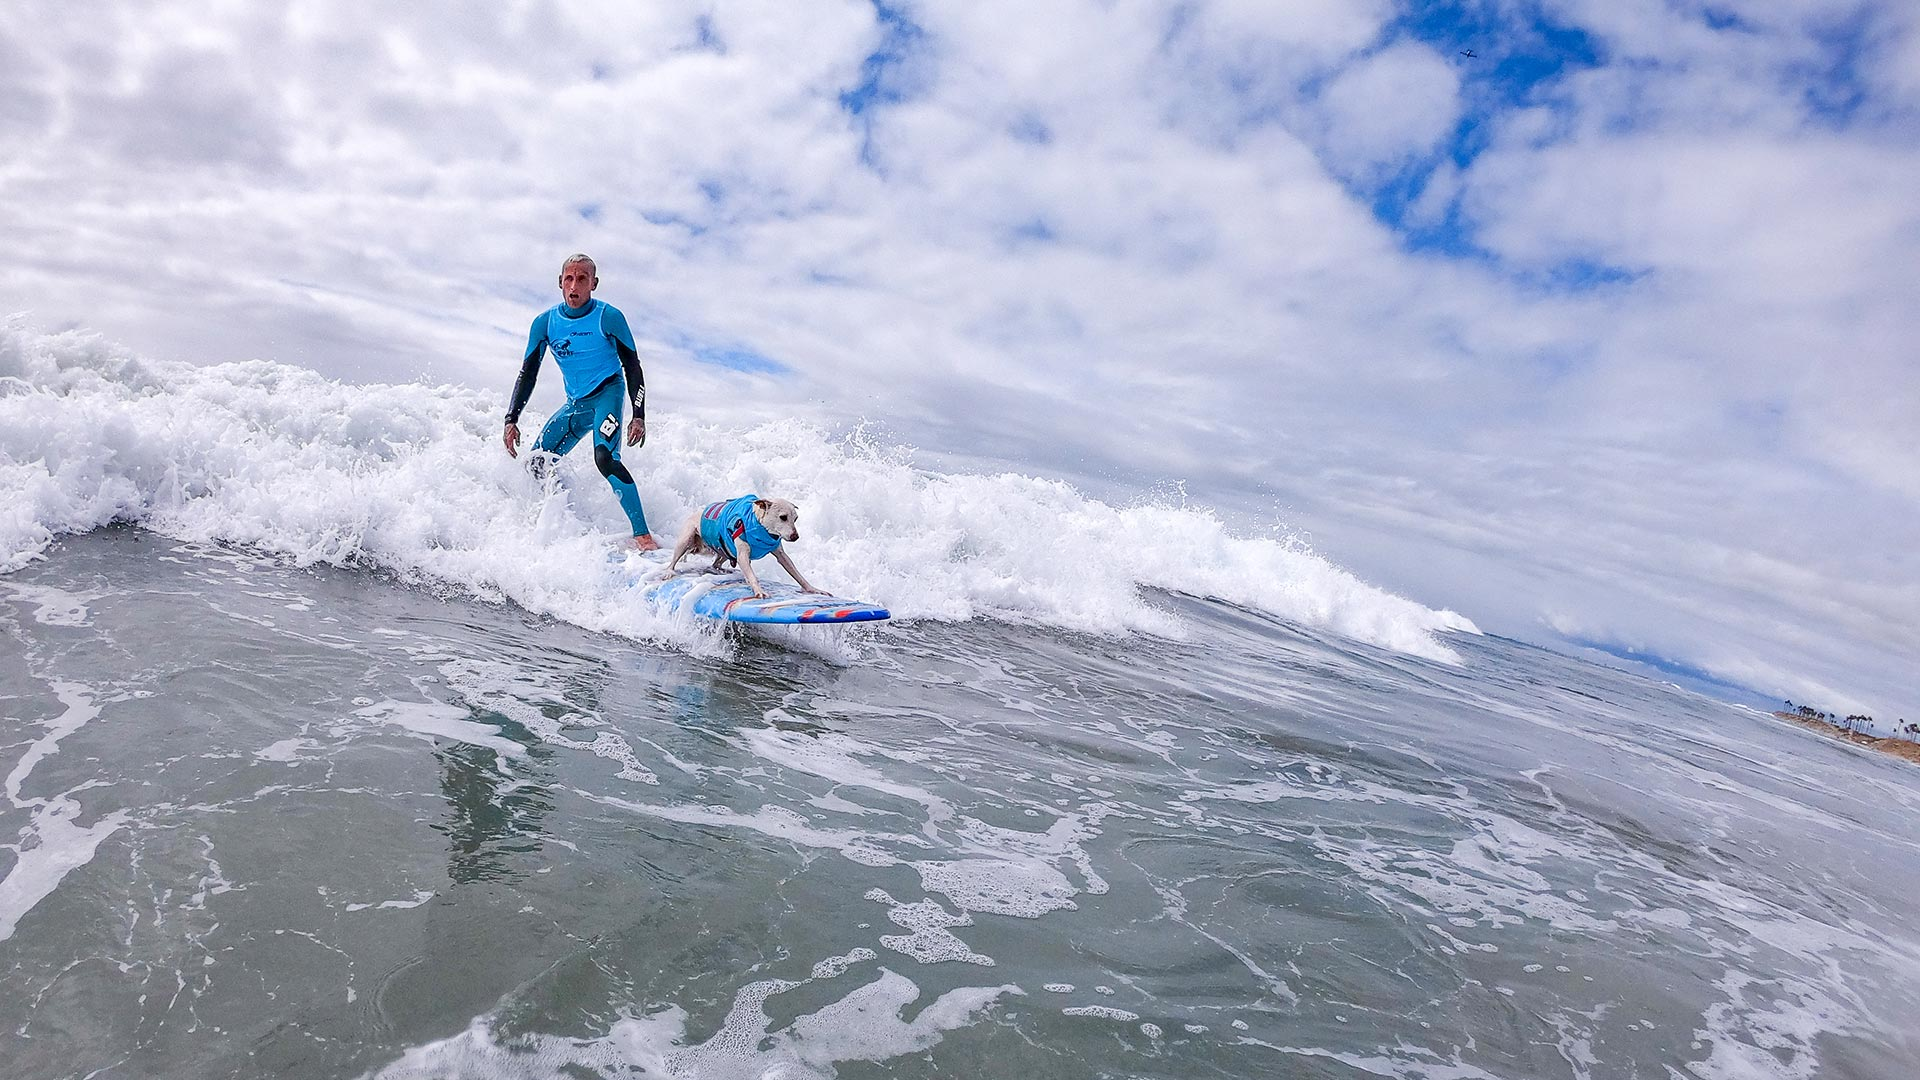 Man in blue rides along a wave with his dog in front of him